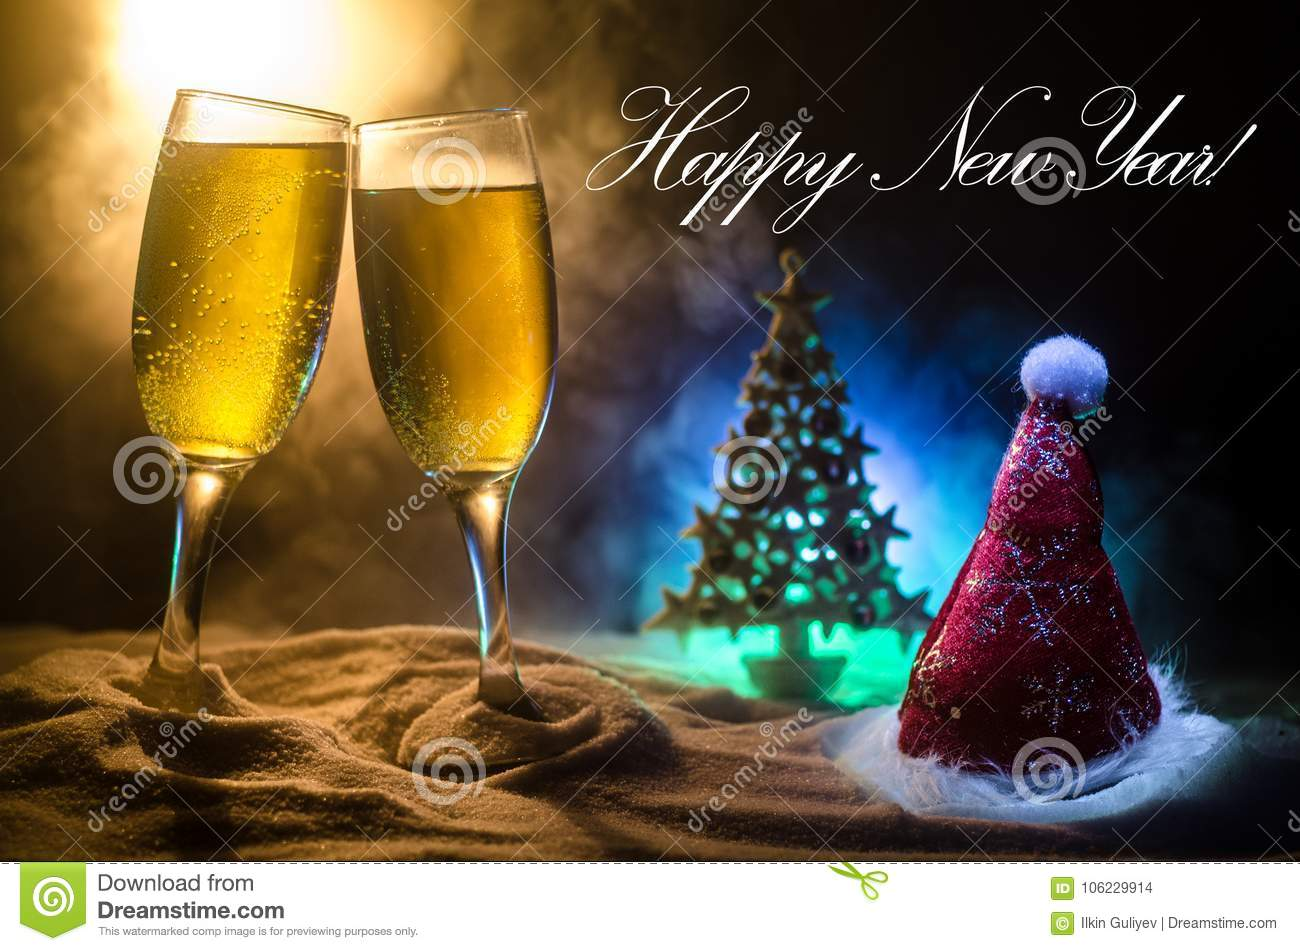 New Year Eve celebration background with pair of flutes and bottle of champagne with Christmas attributes (or elements) on snowy d